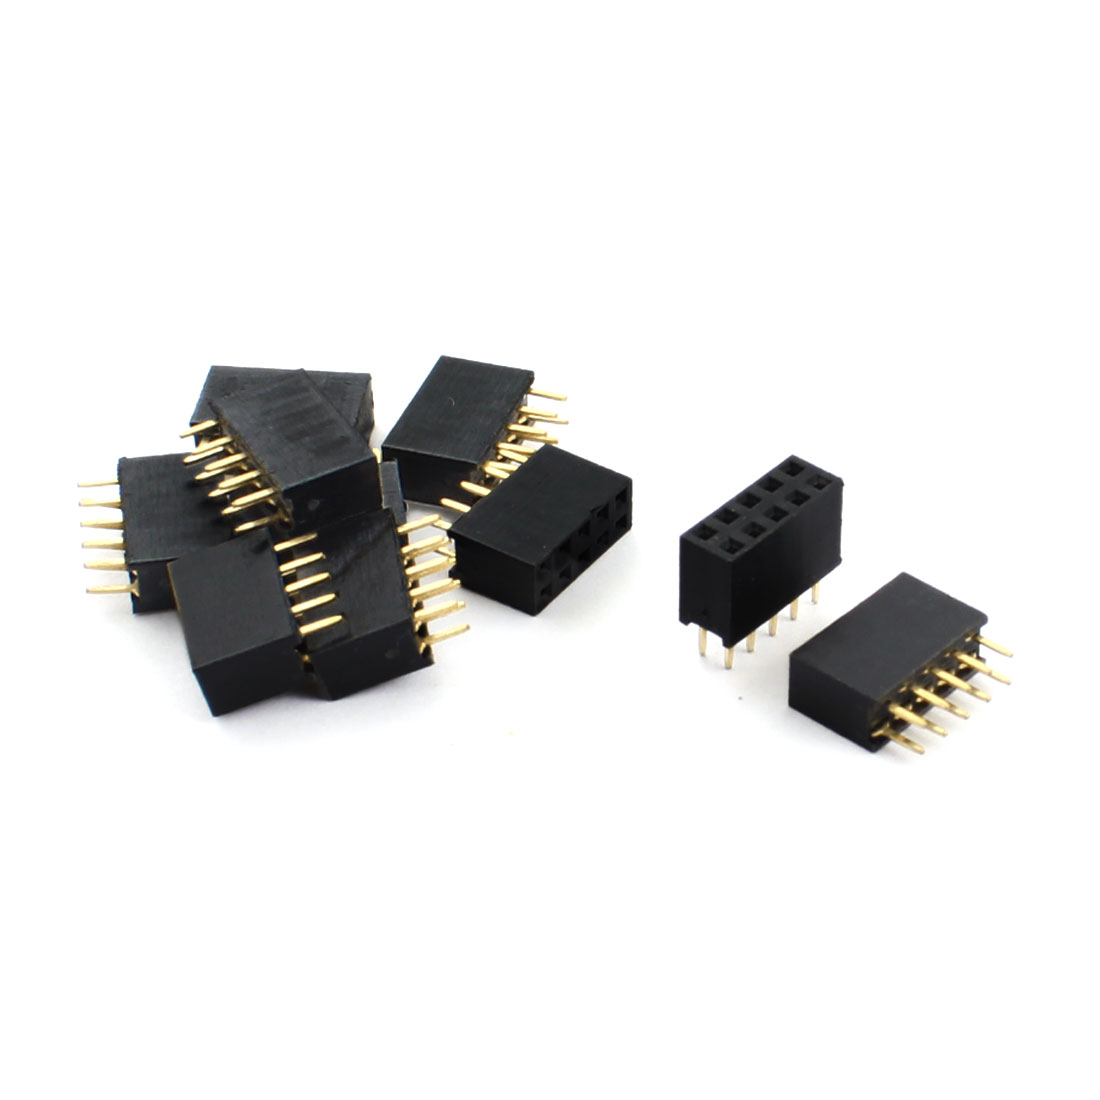 10 Pcs 2.54mm Pitch Double Rows DIP 2x5 10-Pin Female Pin Header Socket Connector Strip